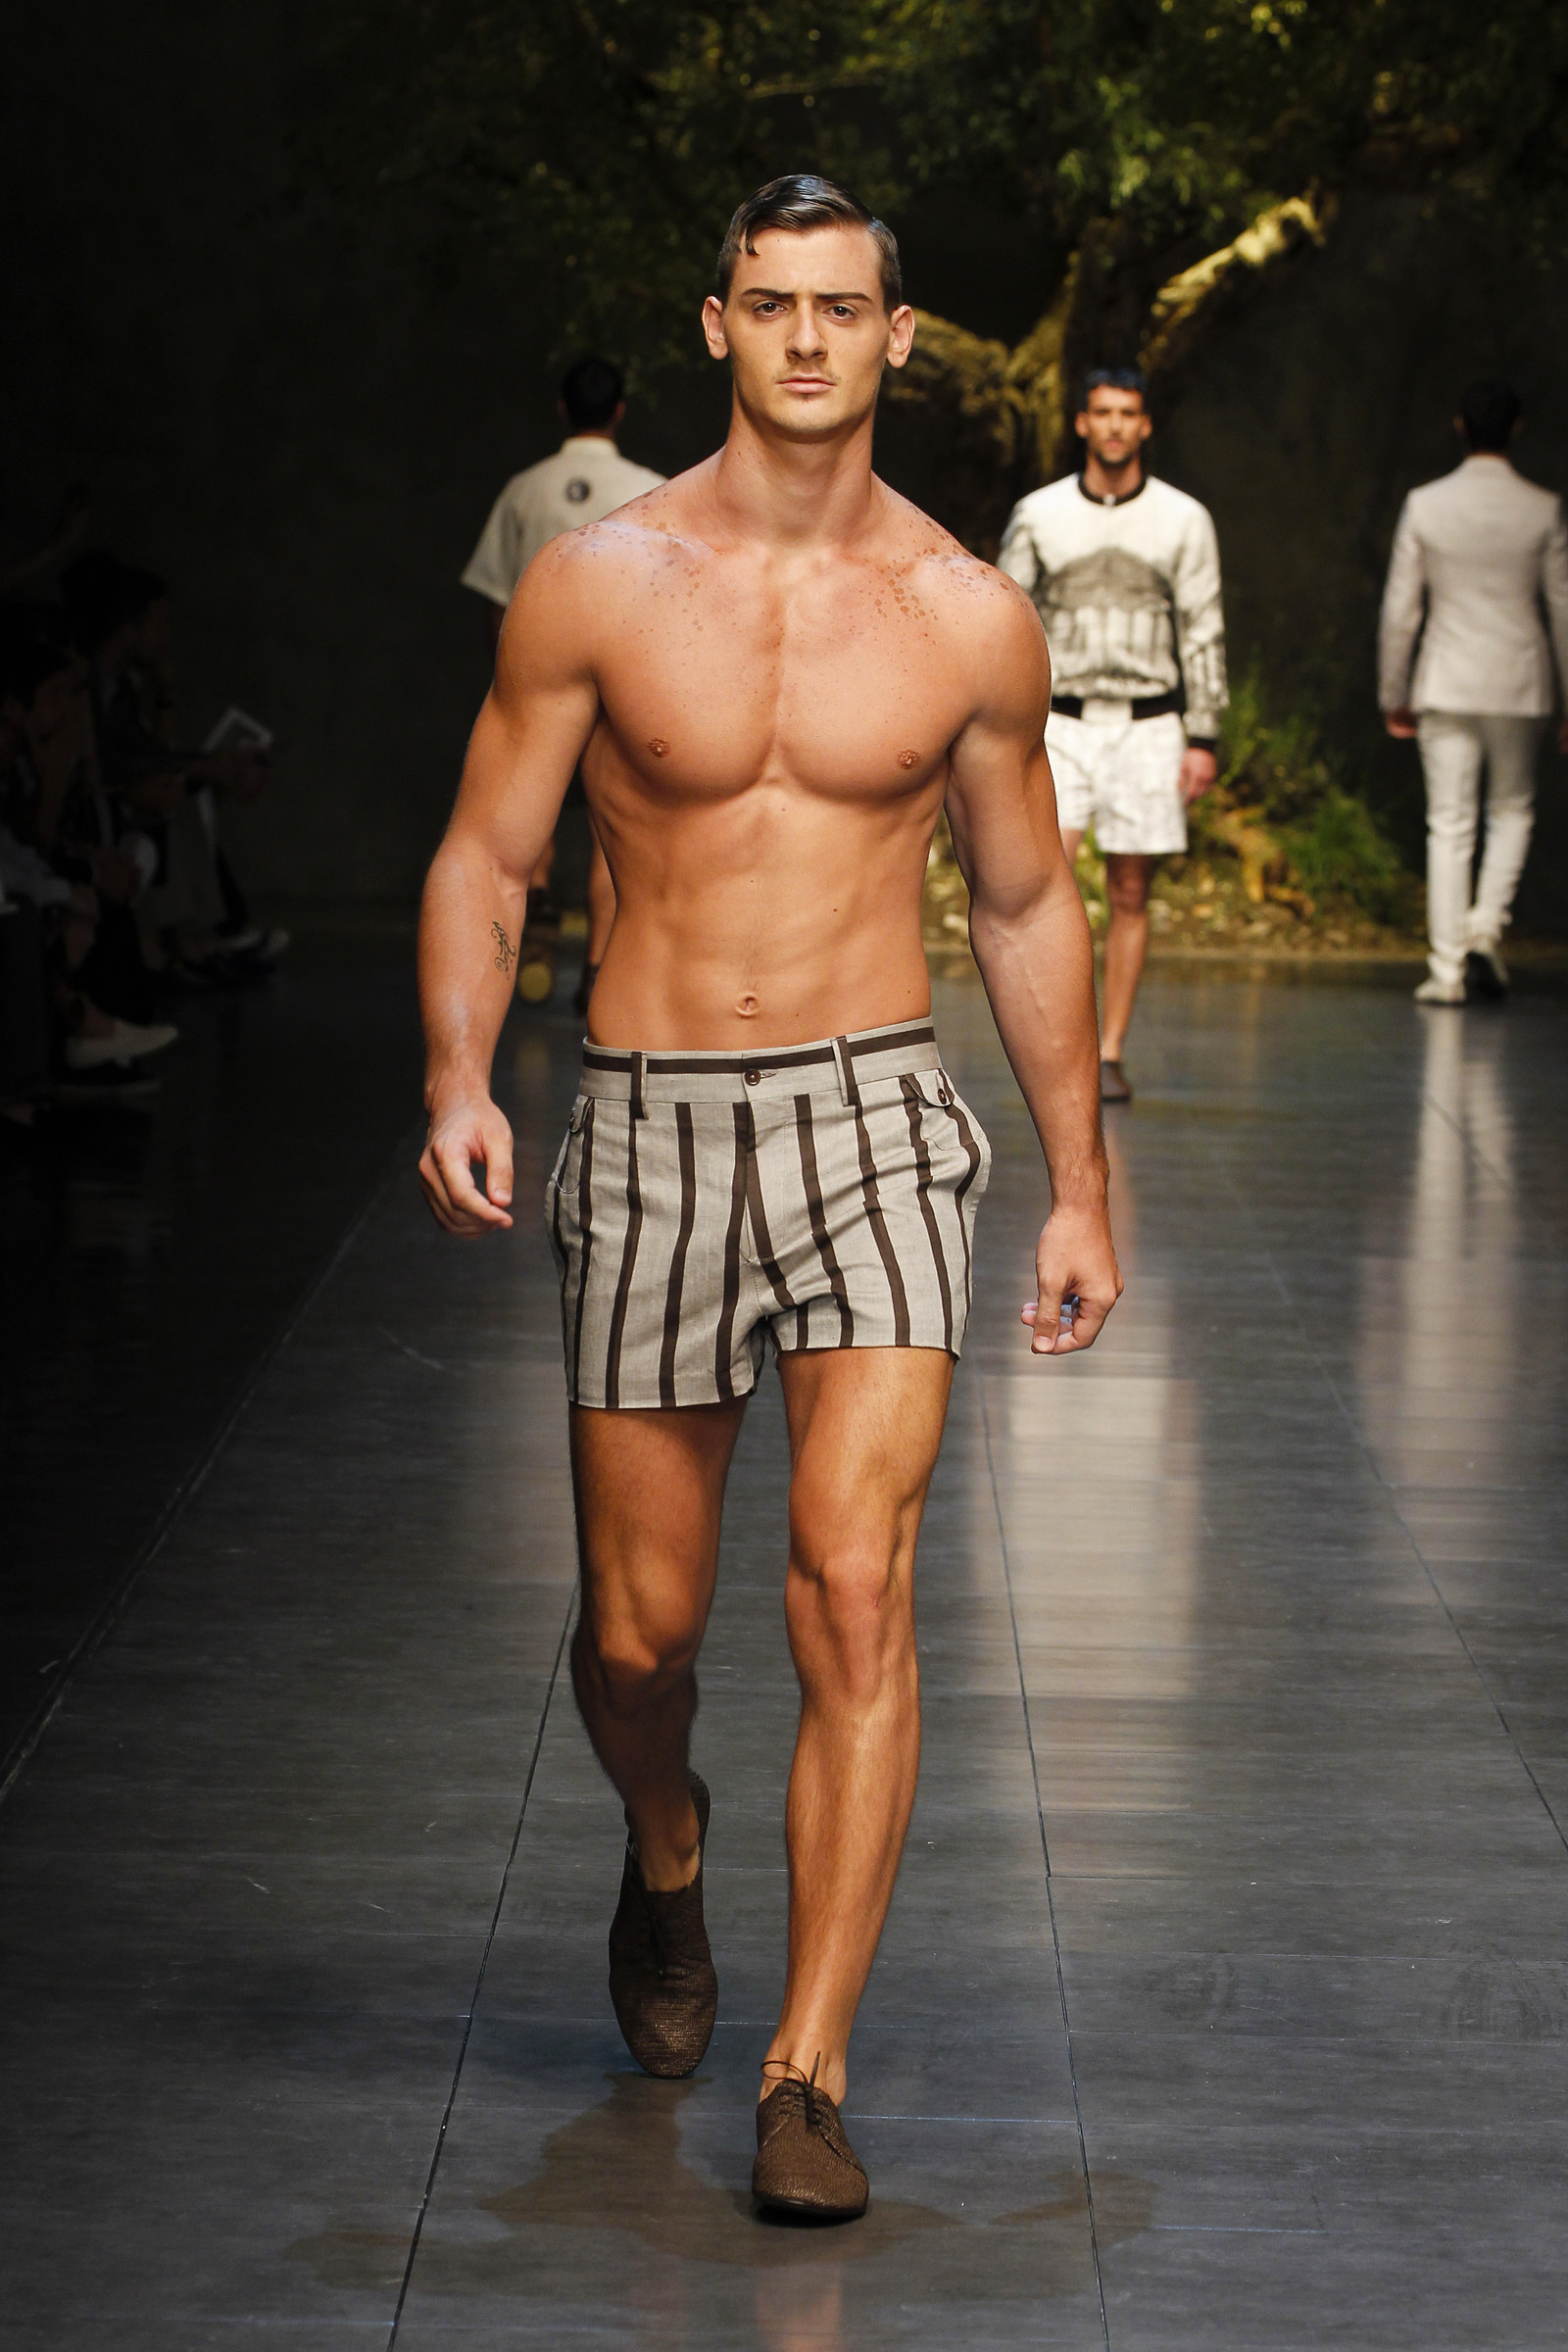 Dolce And Gabbana Men's Fashion Show The Dolce amp Gabbana Men s